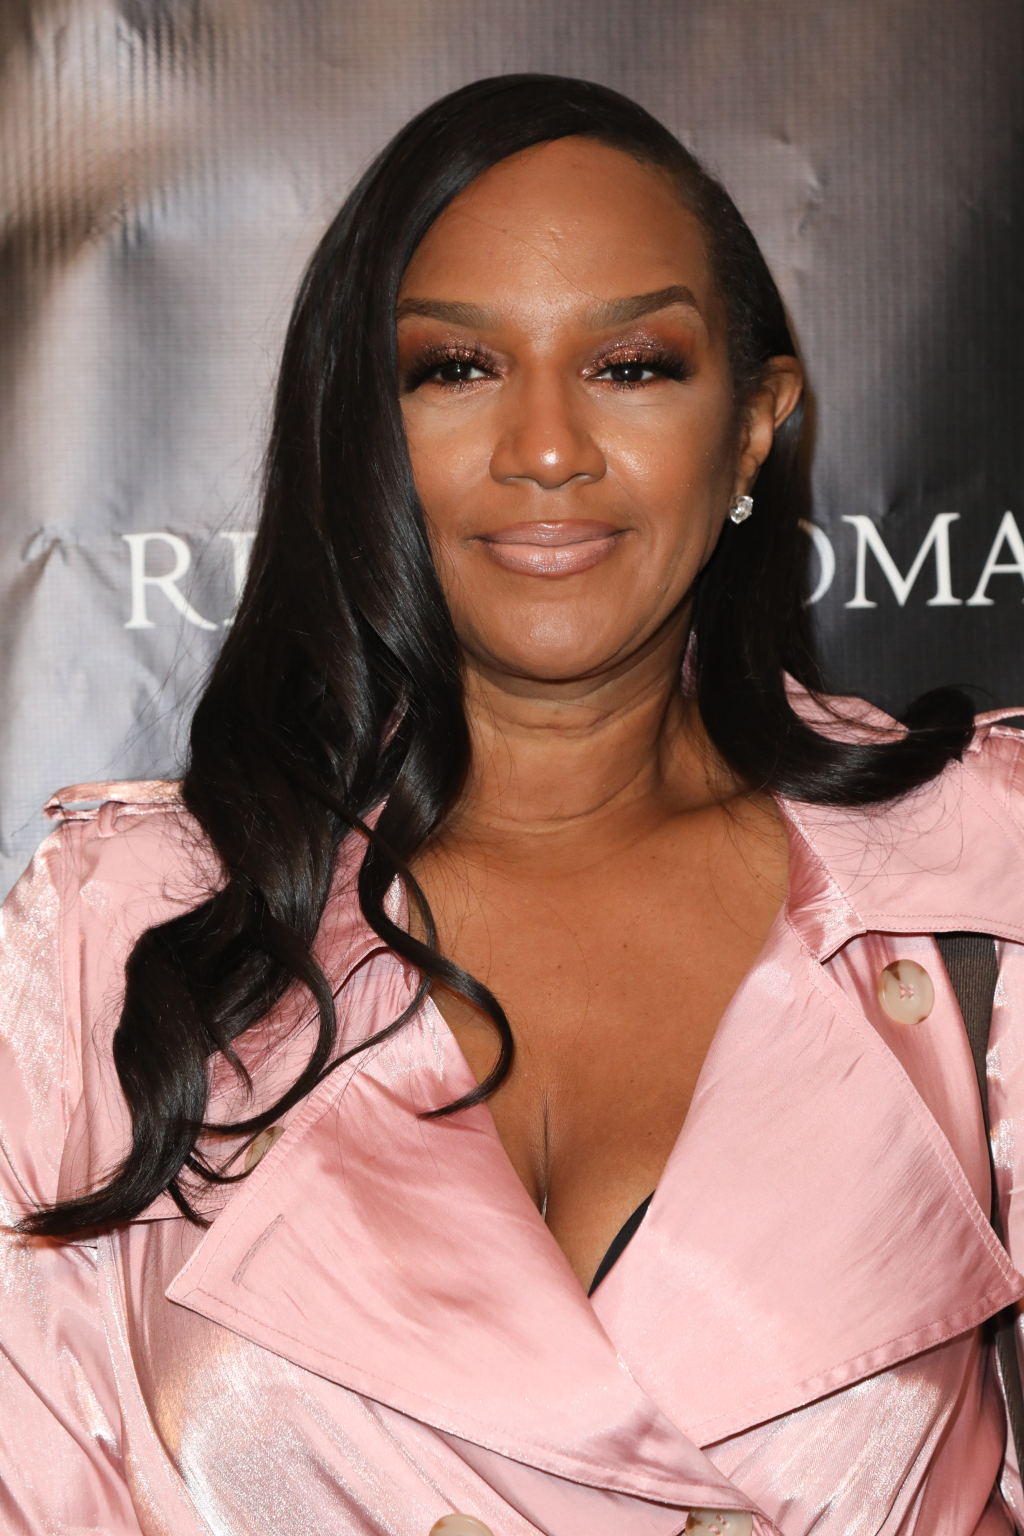 Tami Roman's Spring Shoe Release Party